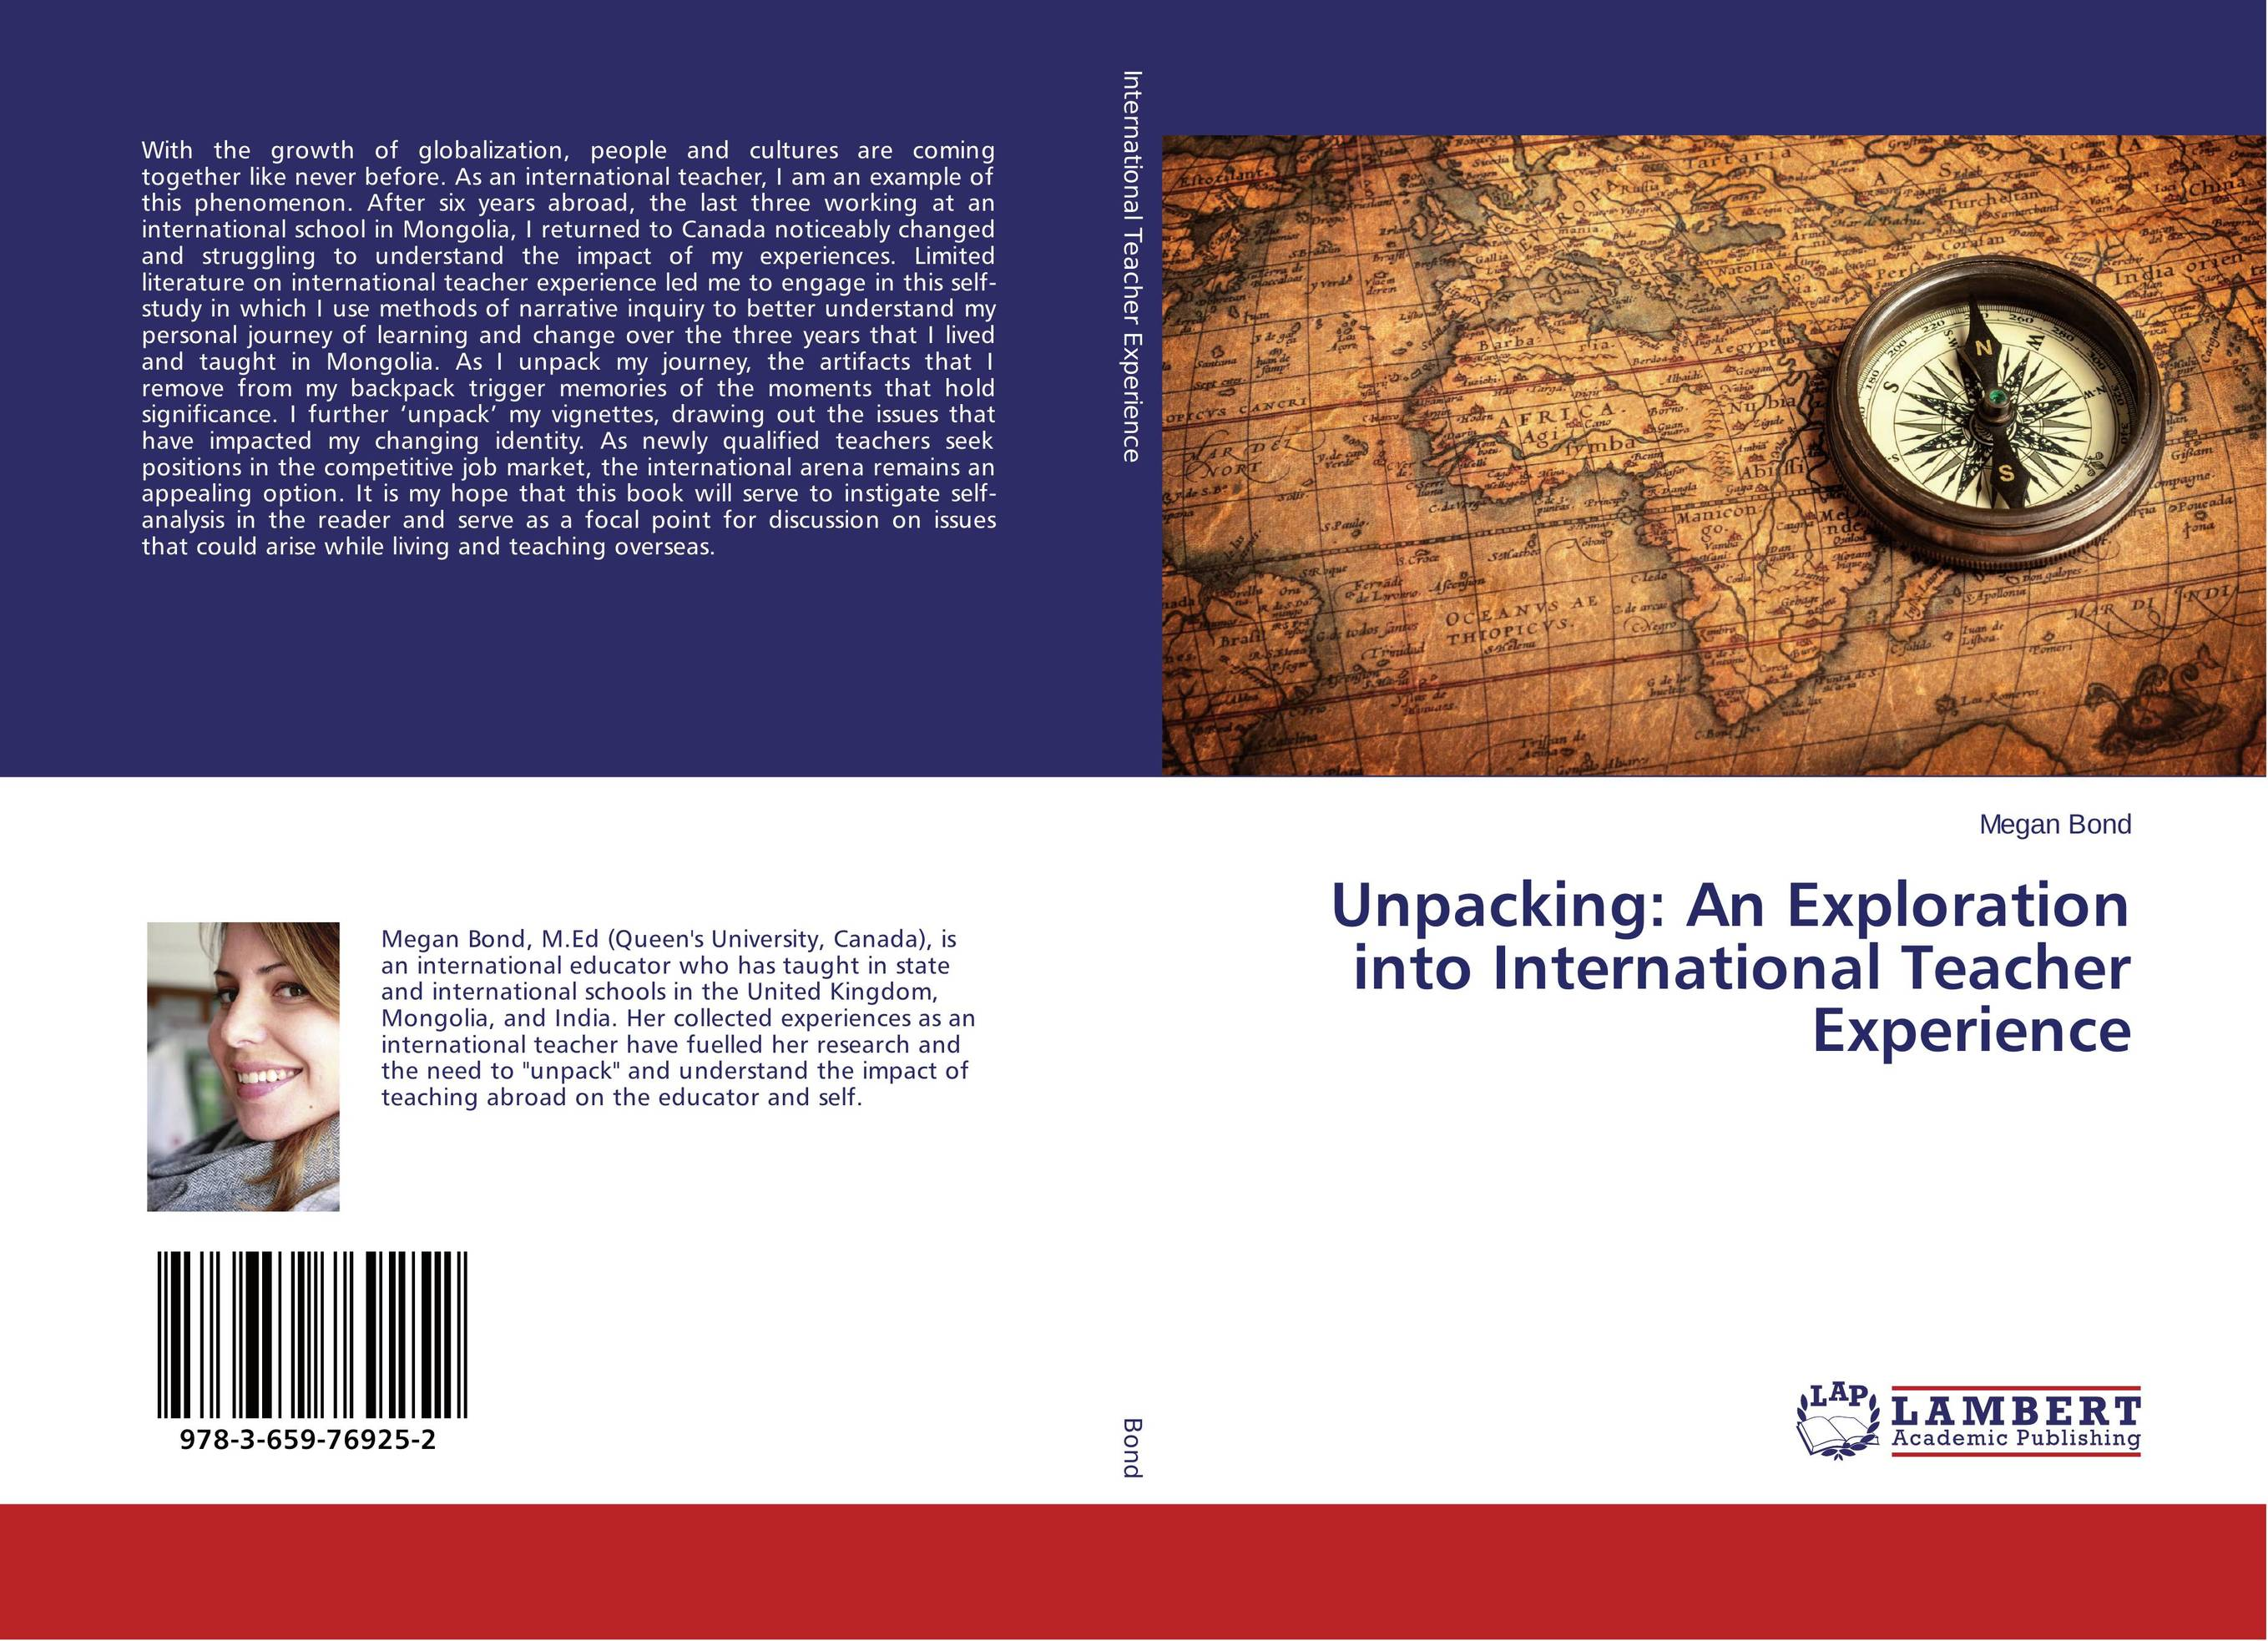 Unpacking: An Exploration into International Teacher Experience antonaros s the teacher s basic tools the teacher as manager